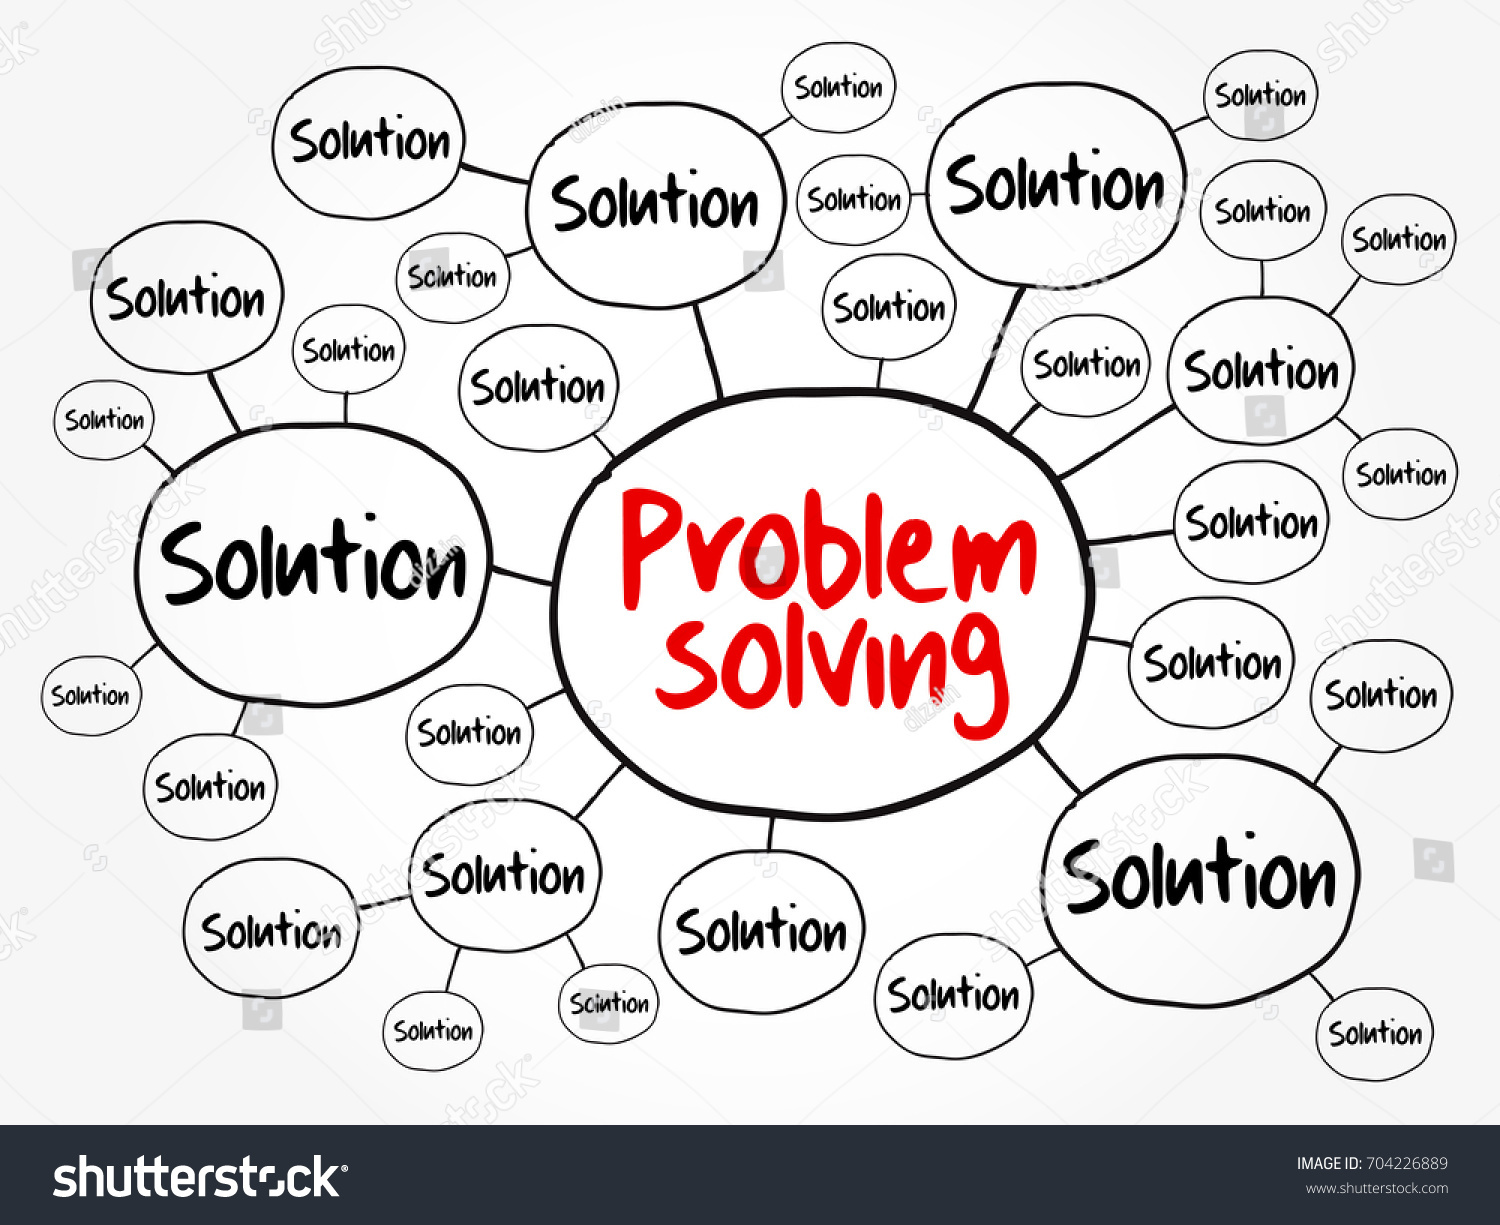 Problem solving aid mind map flowchart stock vector 704226889 problem solving aid mind map flowchart business concept for presentations and reports nvjuhfo Choice Image